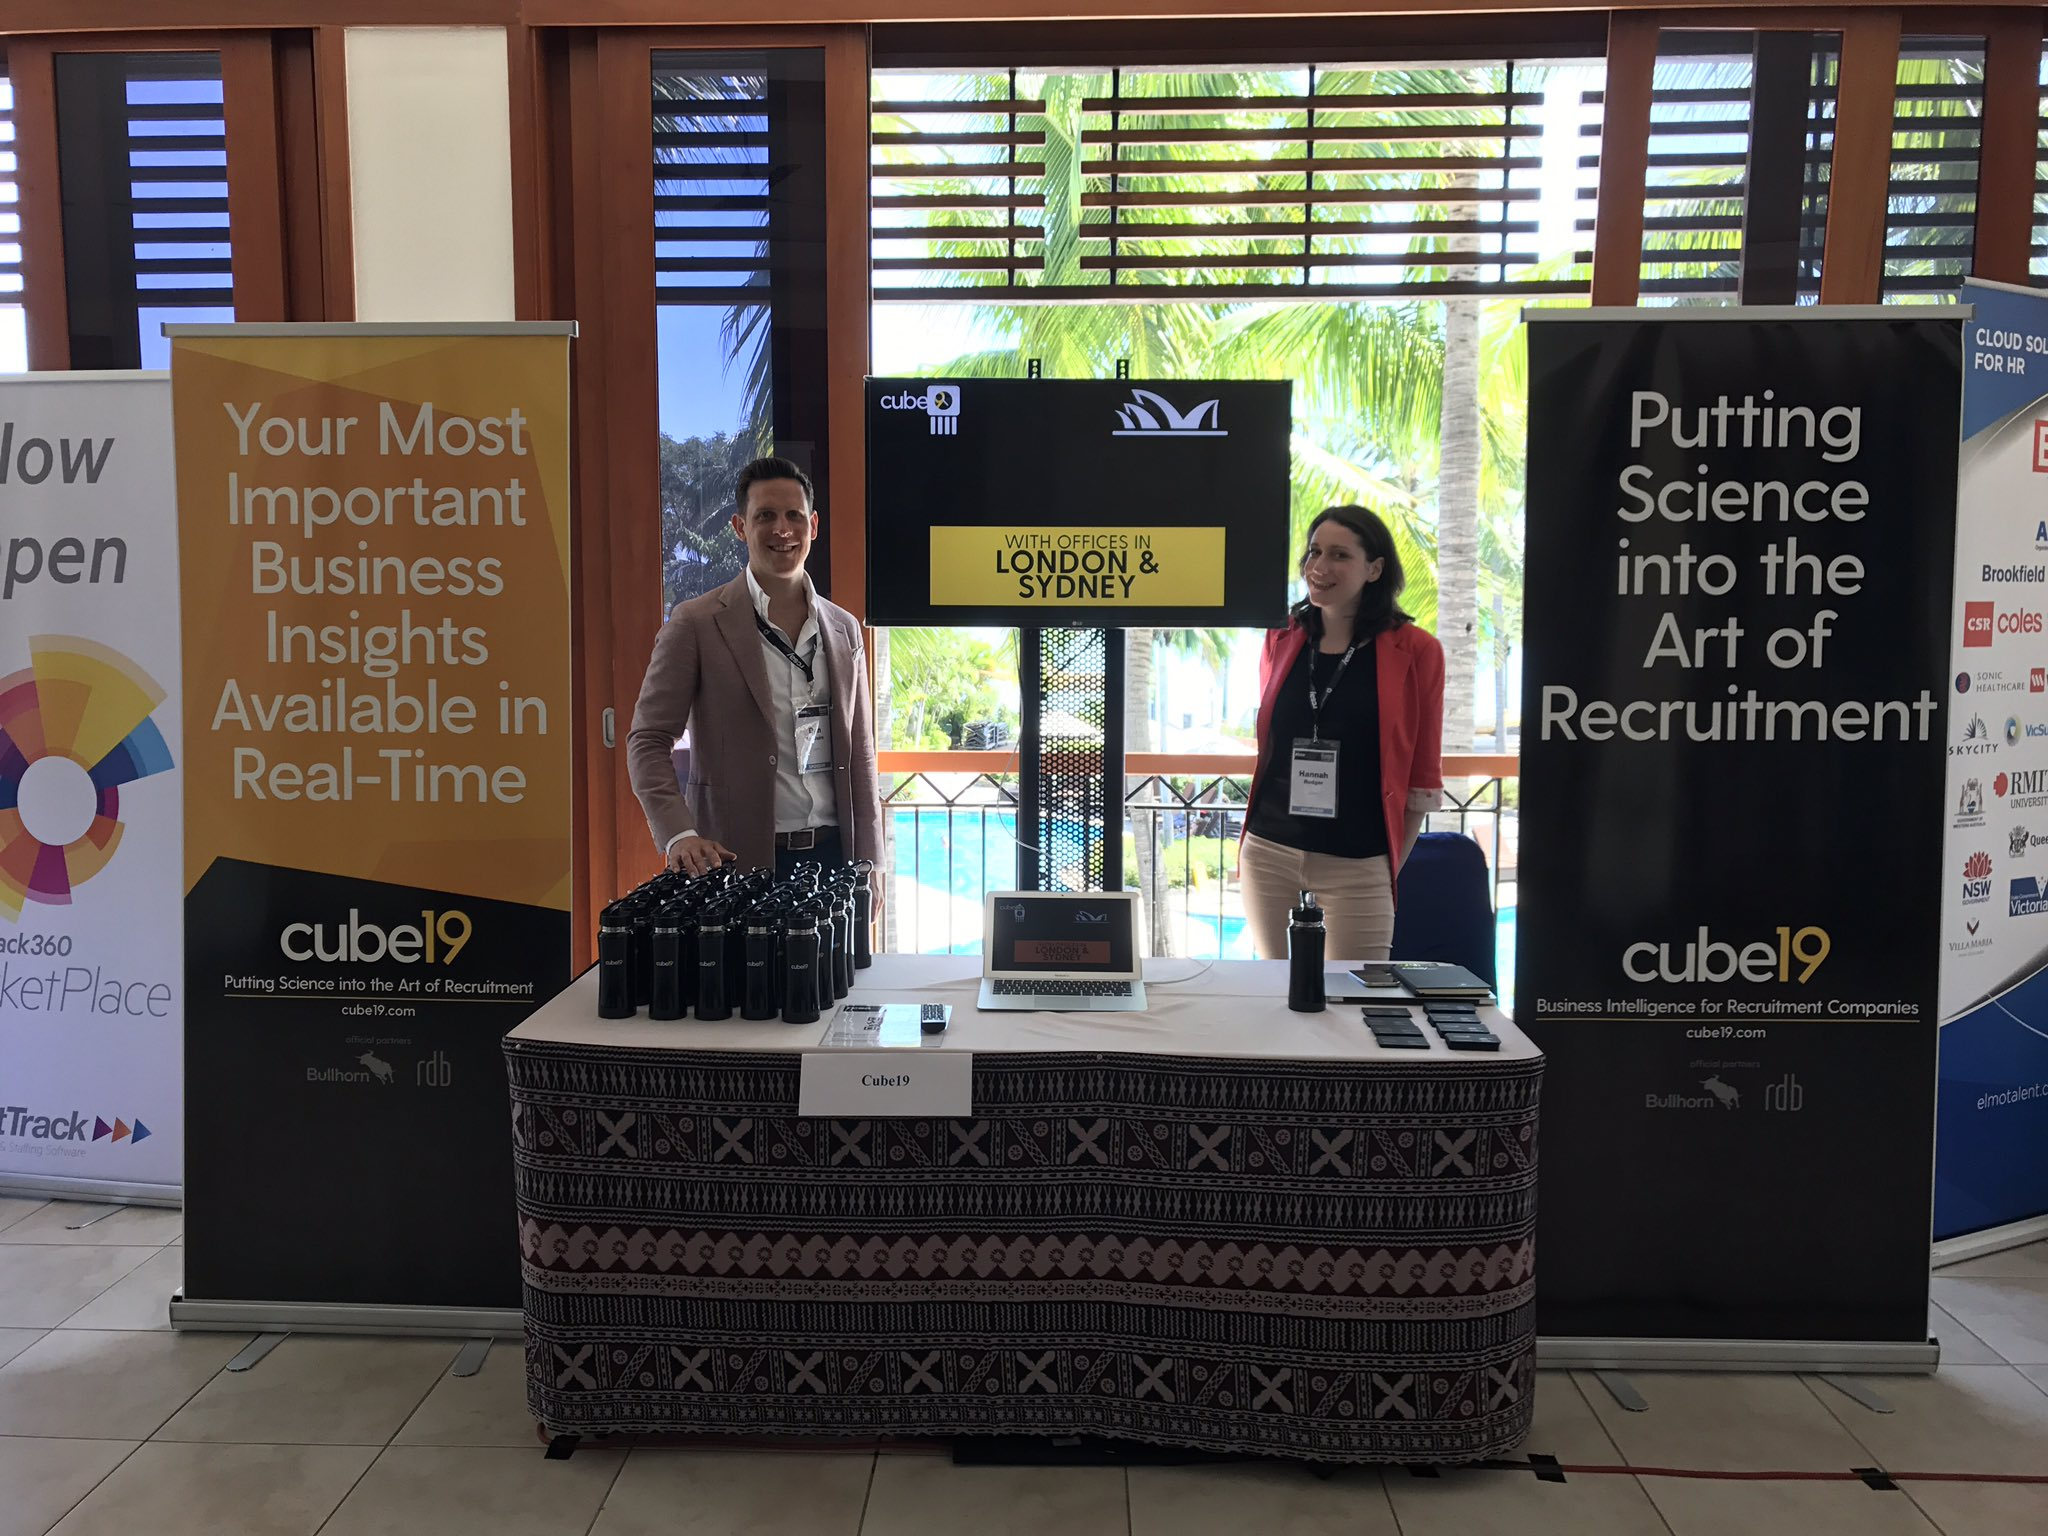 Wave of New Hires as cube19 Show Strength of Recruitment Analytics Market